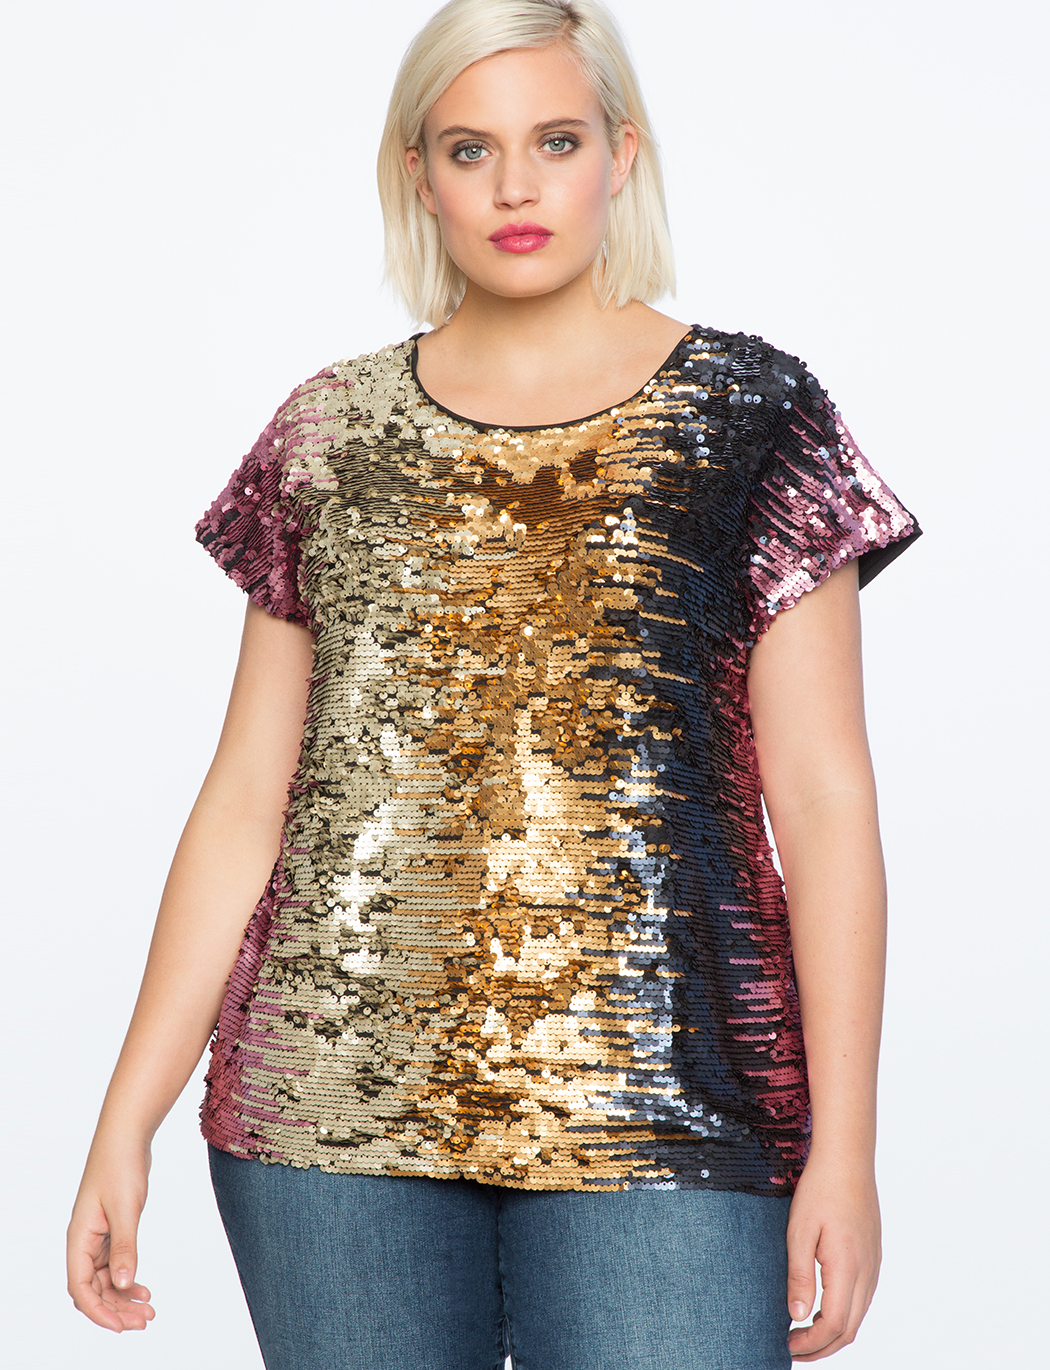 Varigated Sequin Top